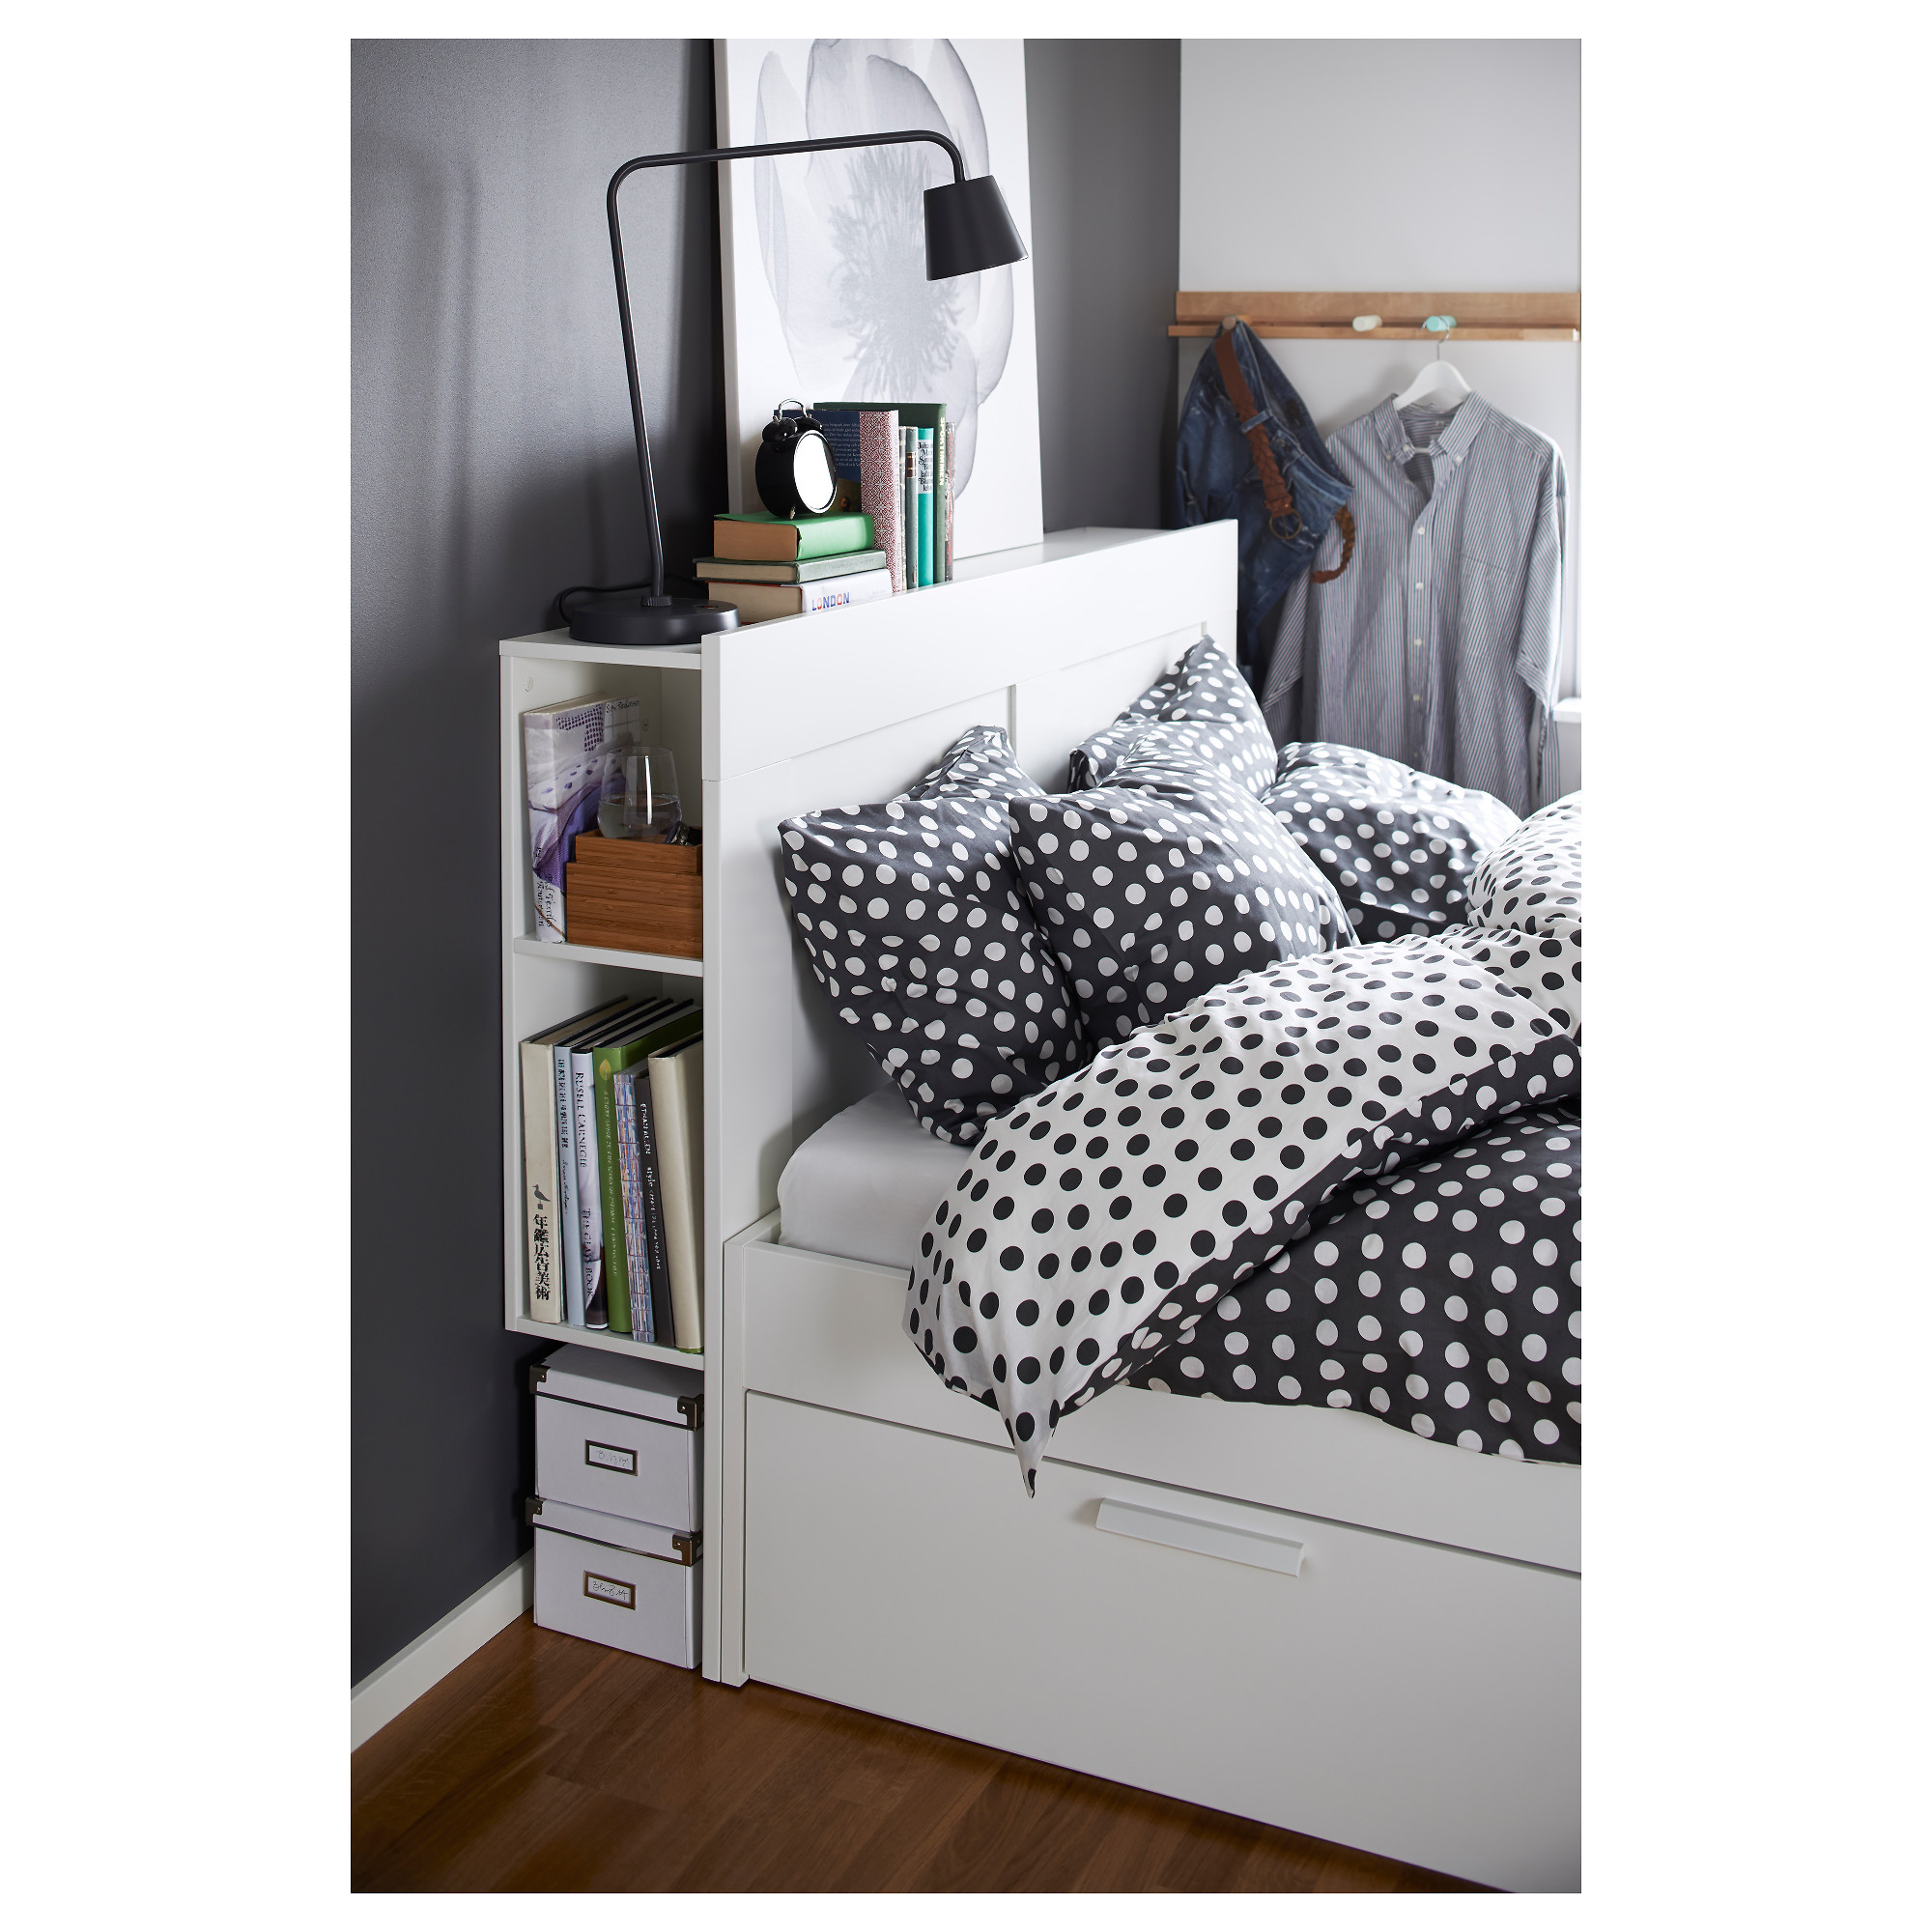 Bed frame with storage - Bed Frame With Storage 9